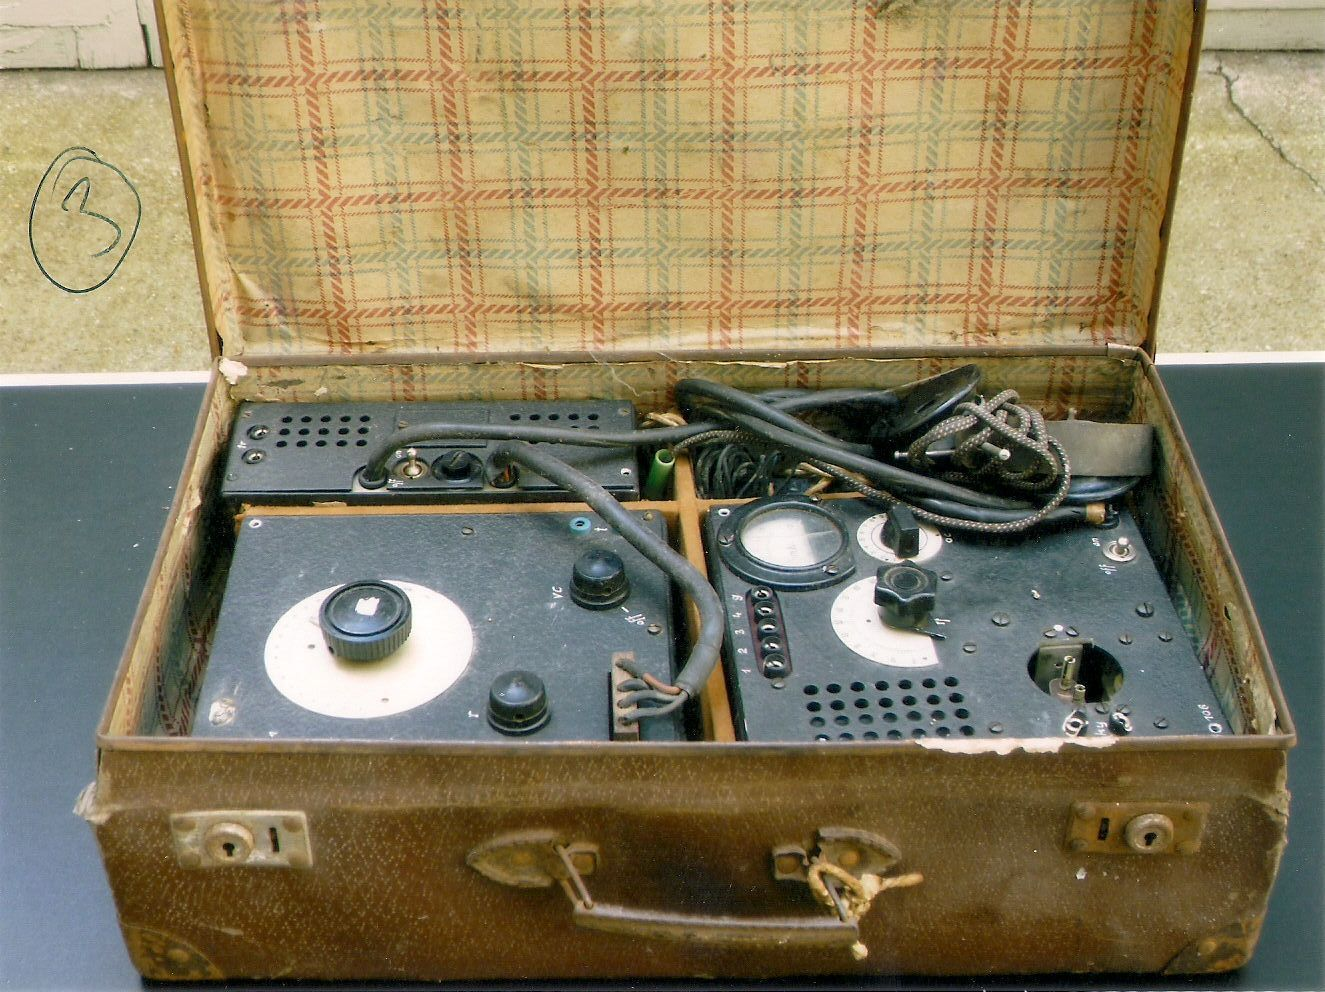 German Abwehr SE 85/14 Suitcase Radio